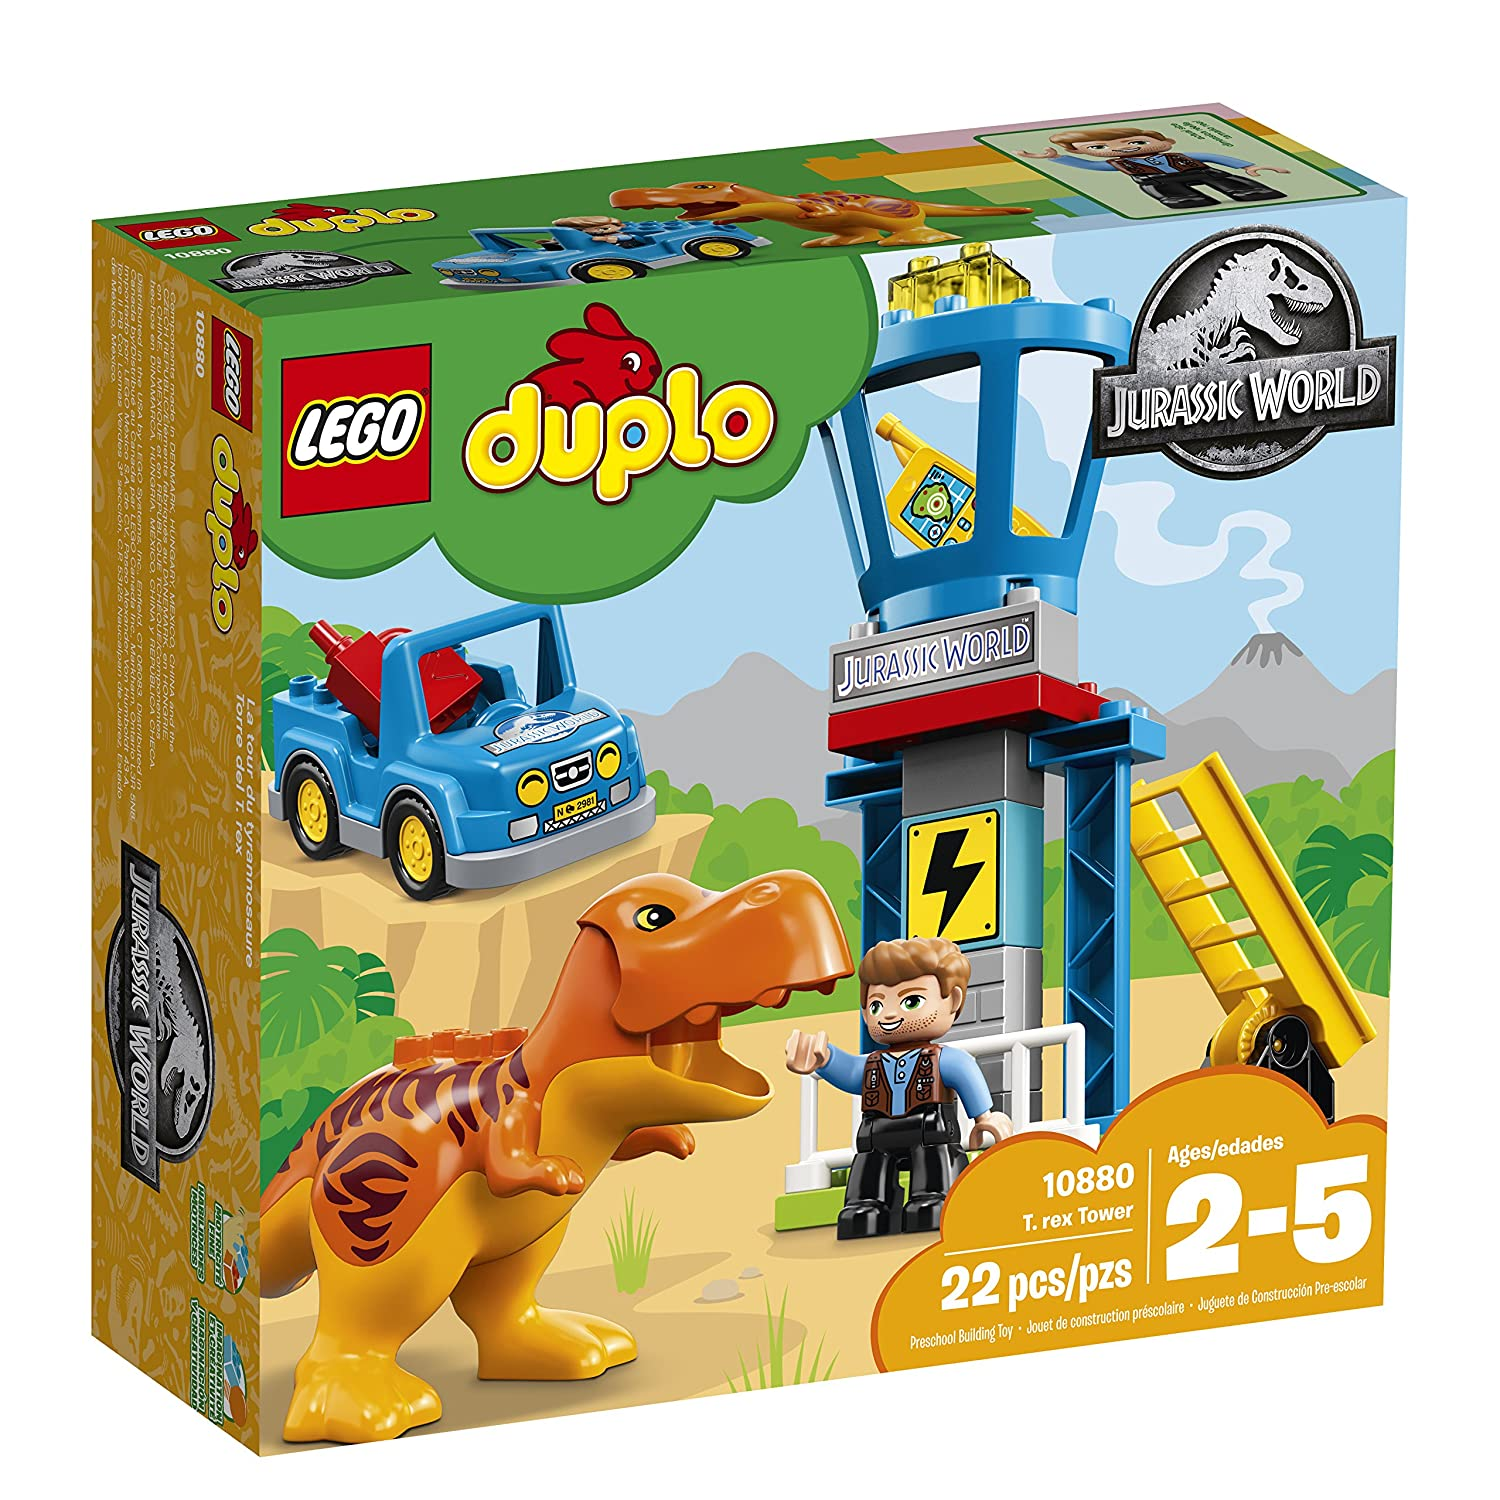 rex Tower 10880 Building Kit 22 pieces LEGO DUPLO Jurassic World T